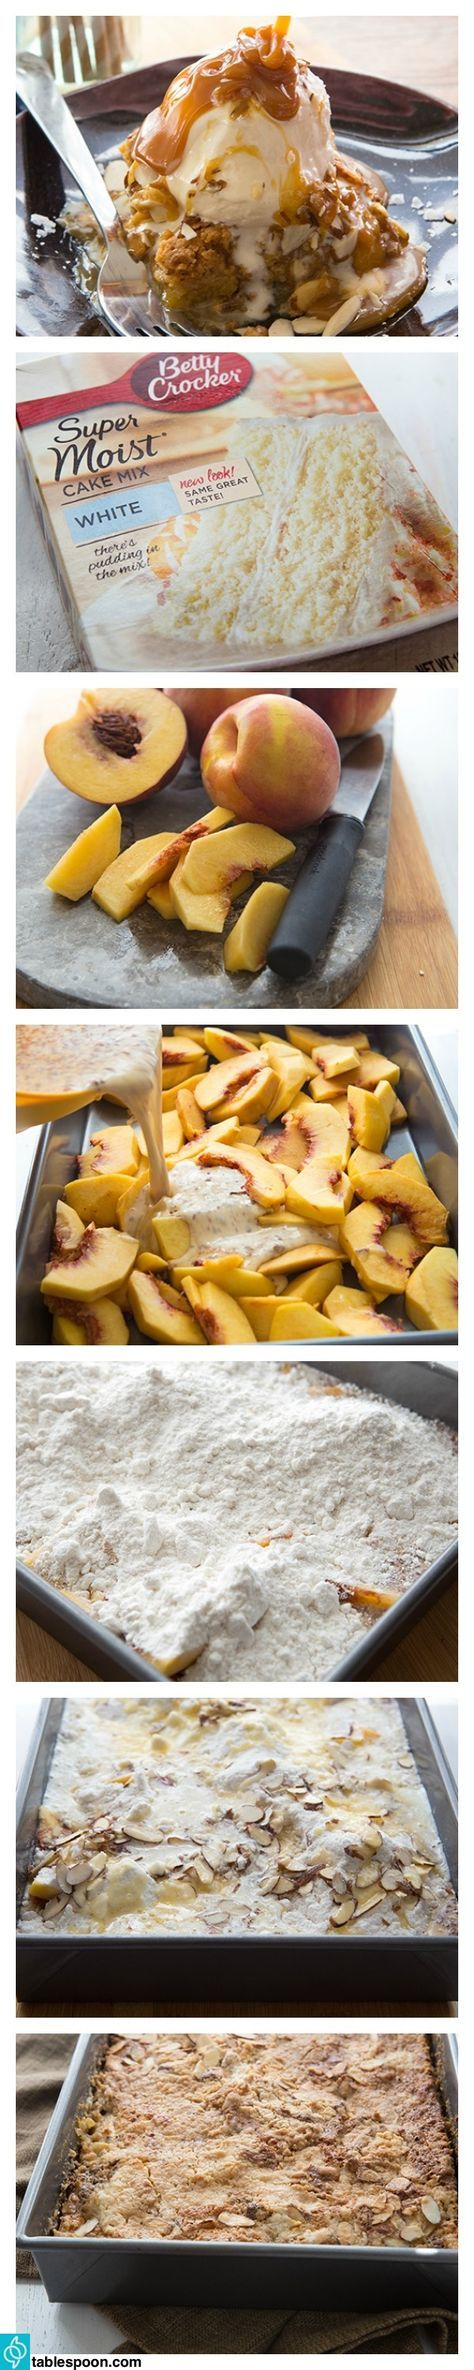 Quick and simple, this delicious peach cake is the perfect way to enjoy fresh spring peaches. Just dump in the ingredients, bake and serve!